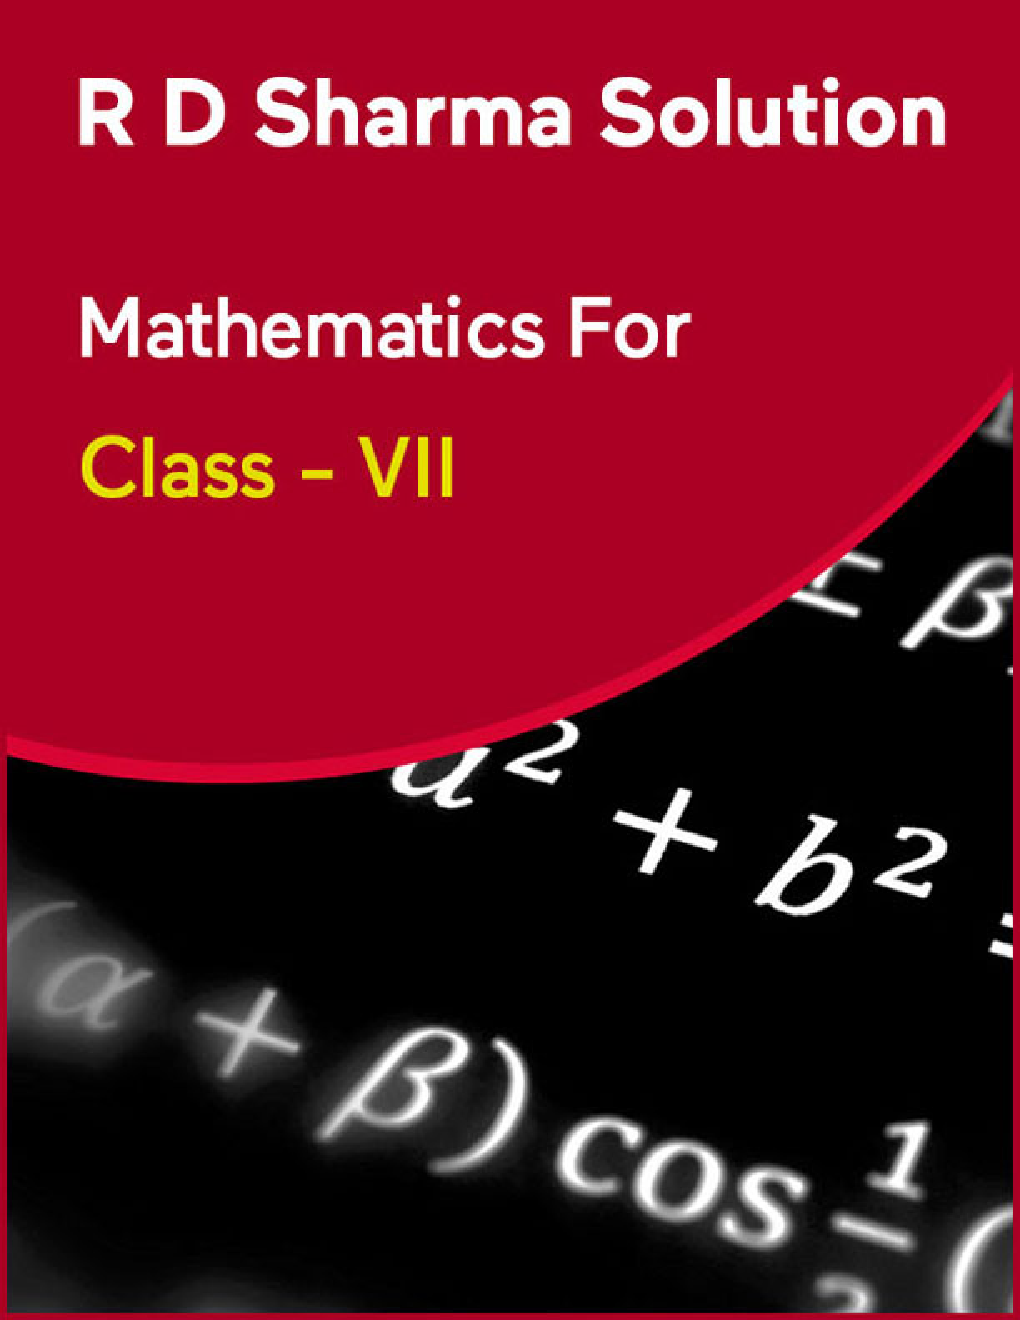 R D Sharma Solution Mathematics For Class - VII - Page 1